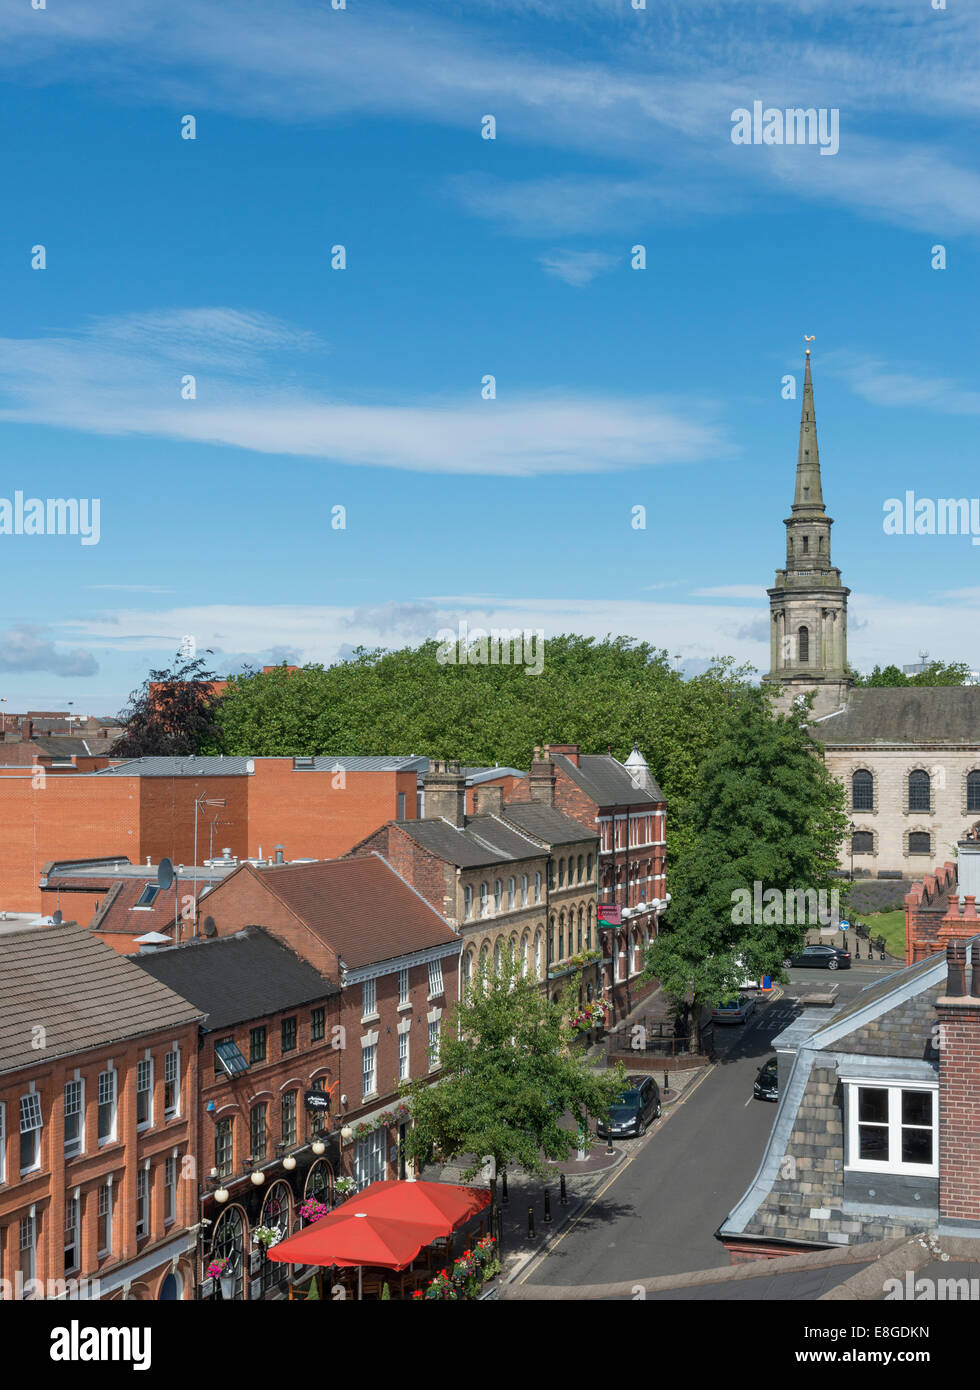 The Jewellery Quarter of Birmingham, England. Ludgate Hill. - Stock Image